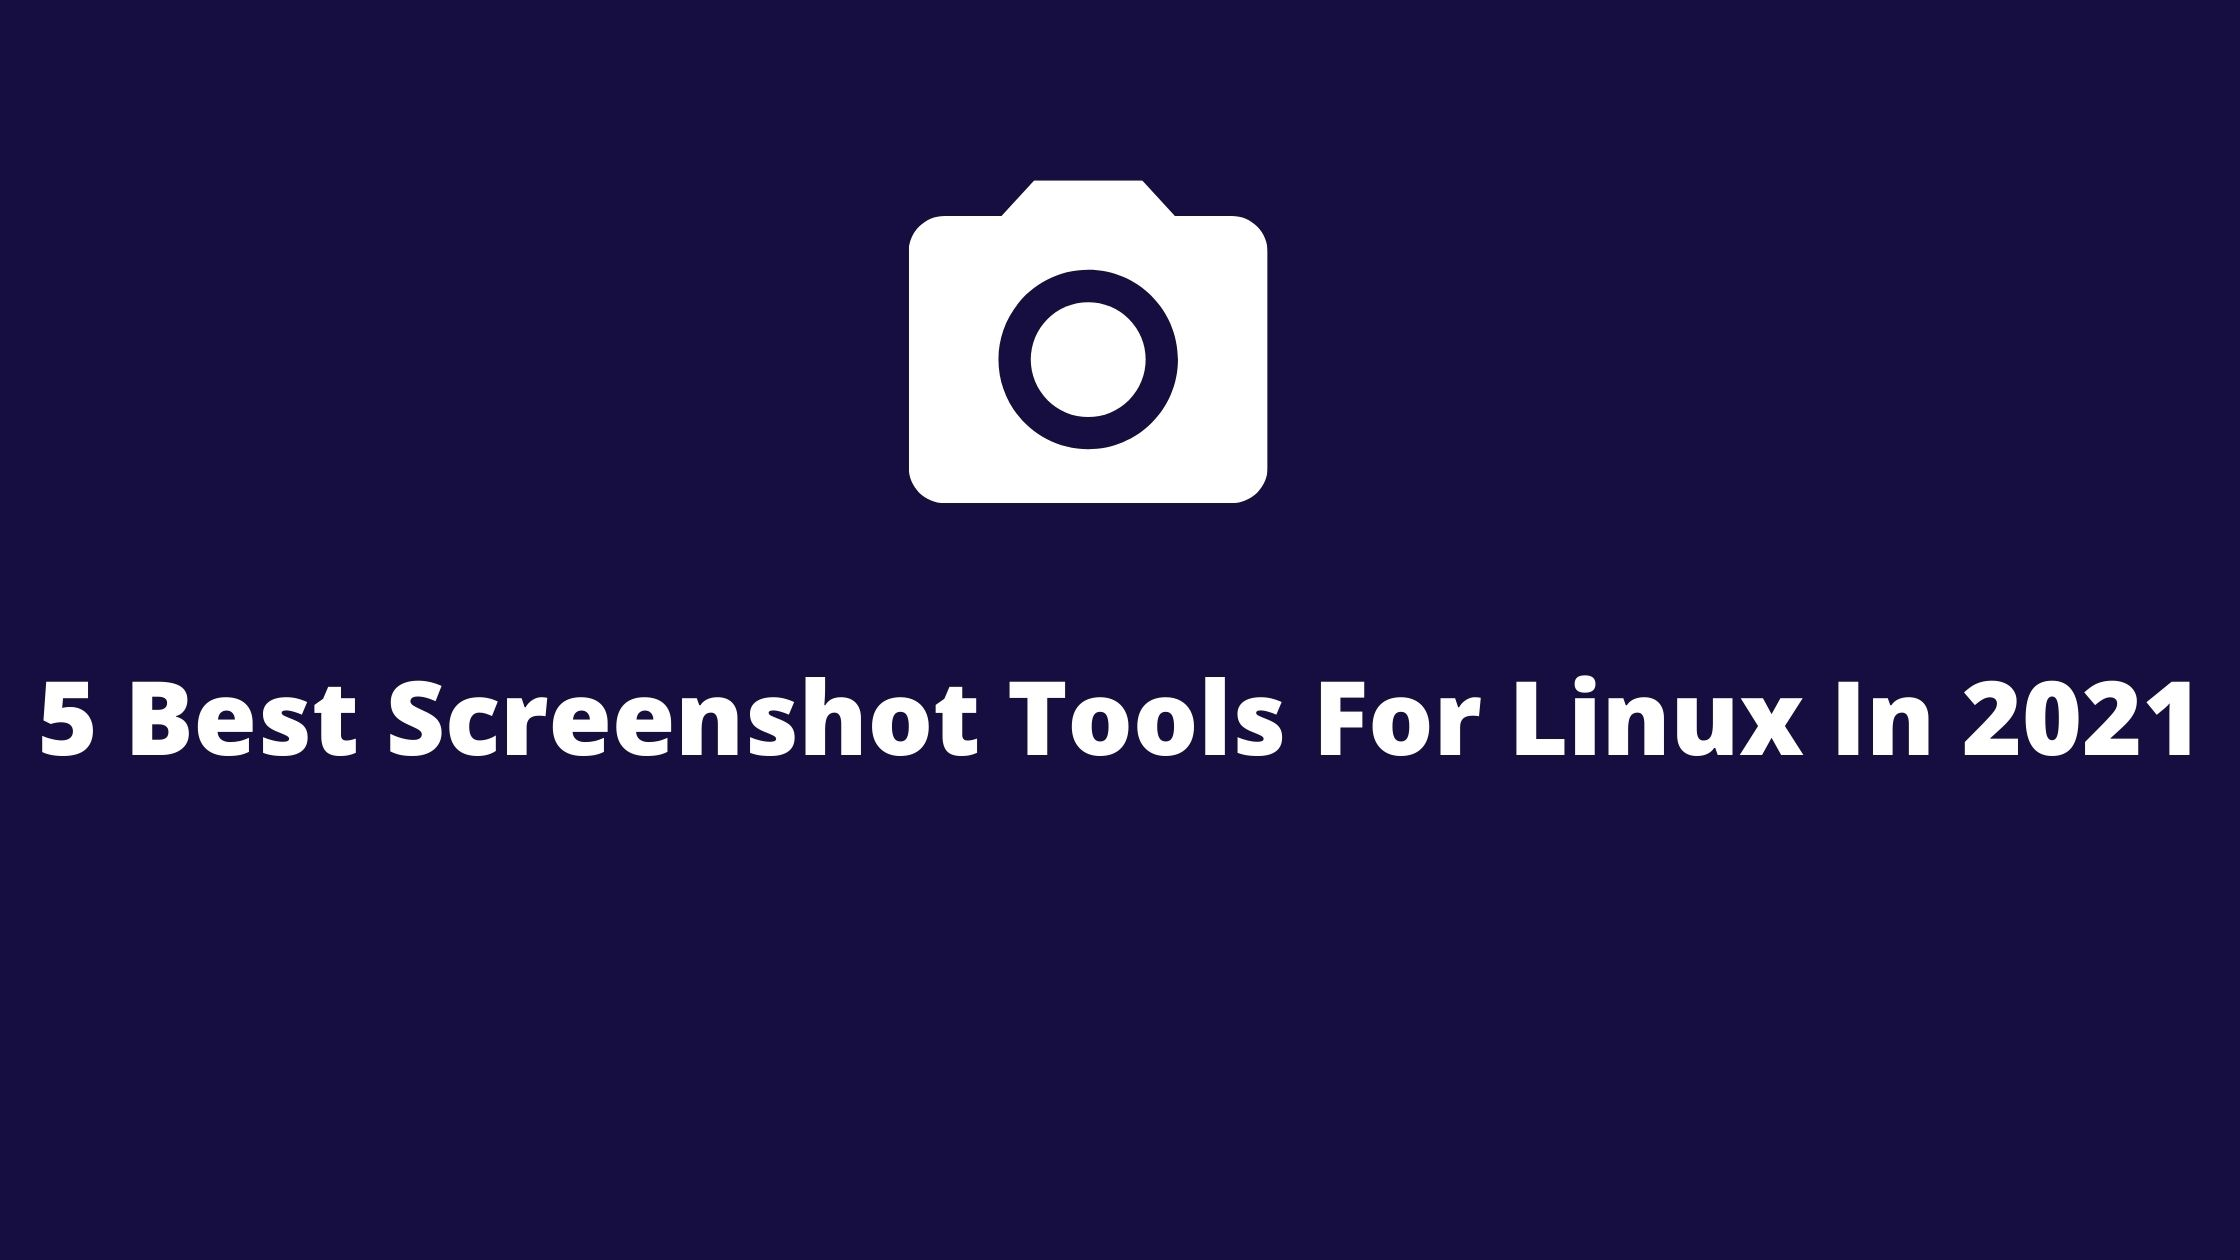 5 Best Screenshot Tools For Linux In 2021